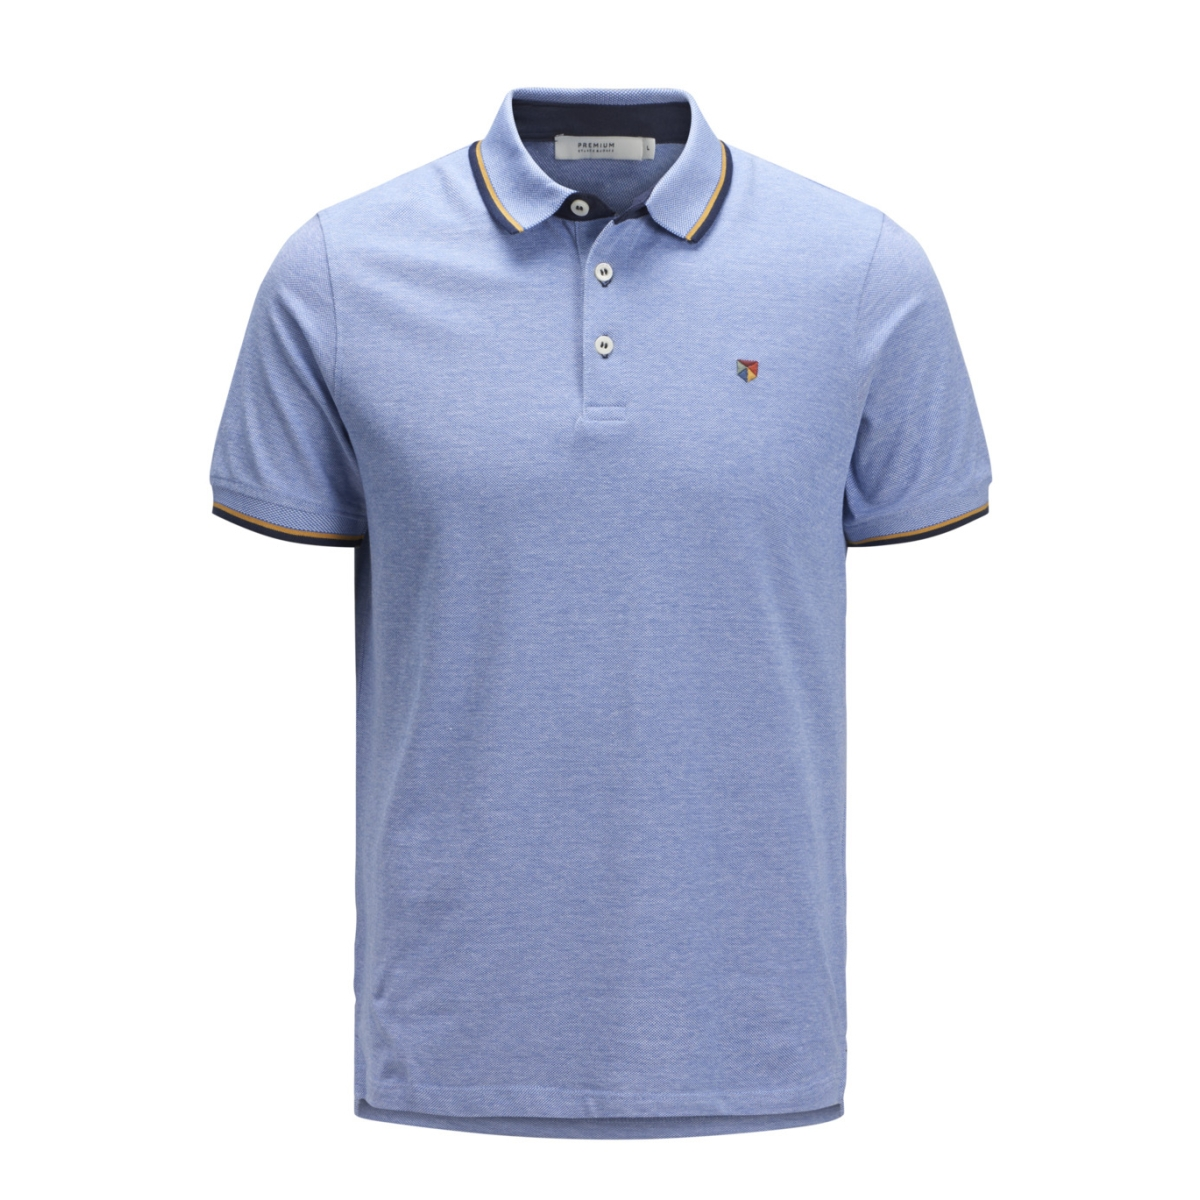 jprpaulos play blu. polo ss sts 12135529 jack & jones polo bright cobalt/slim mixed